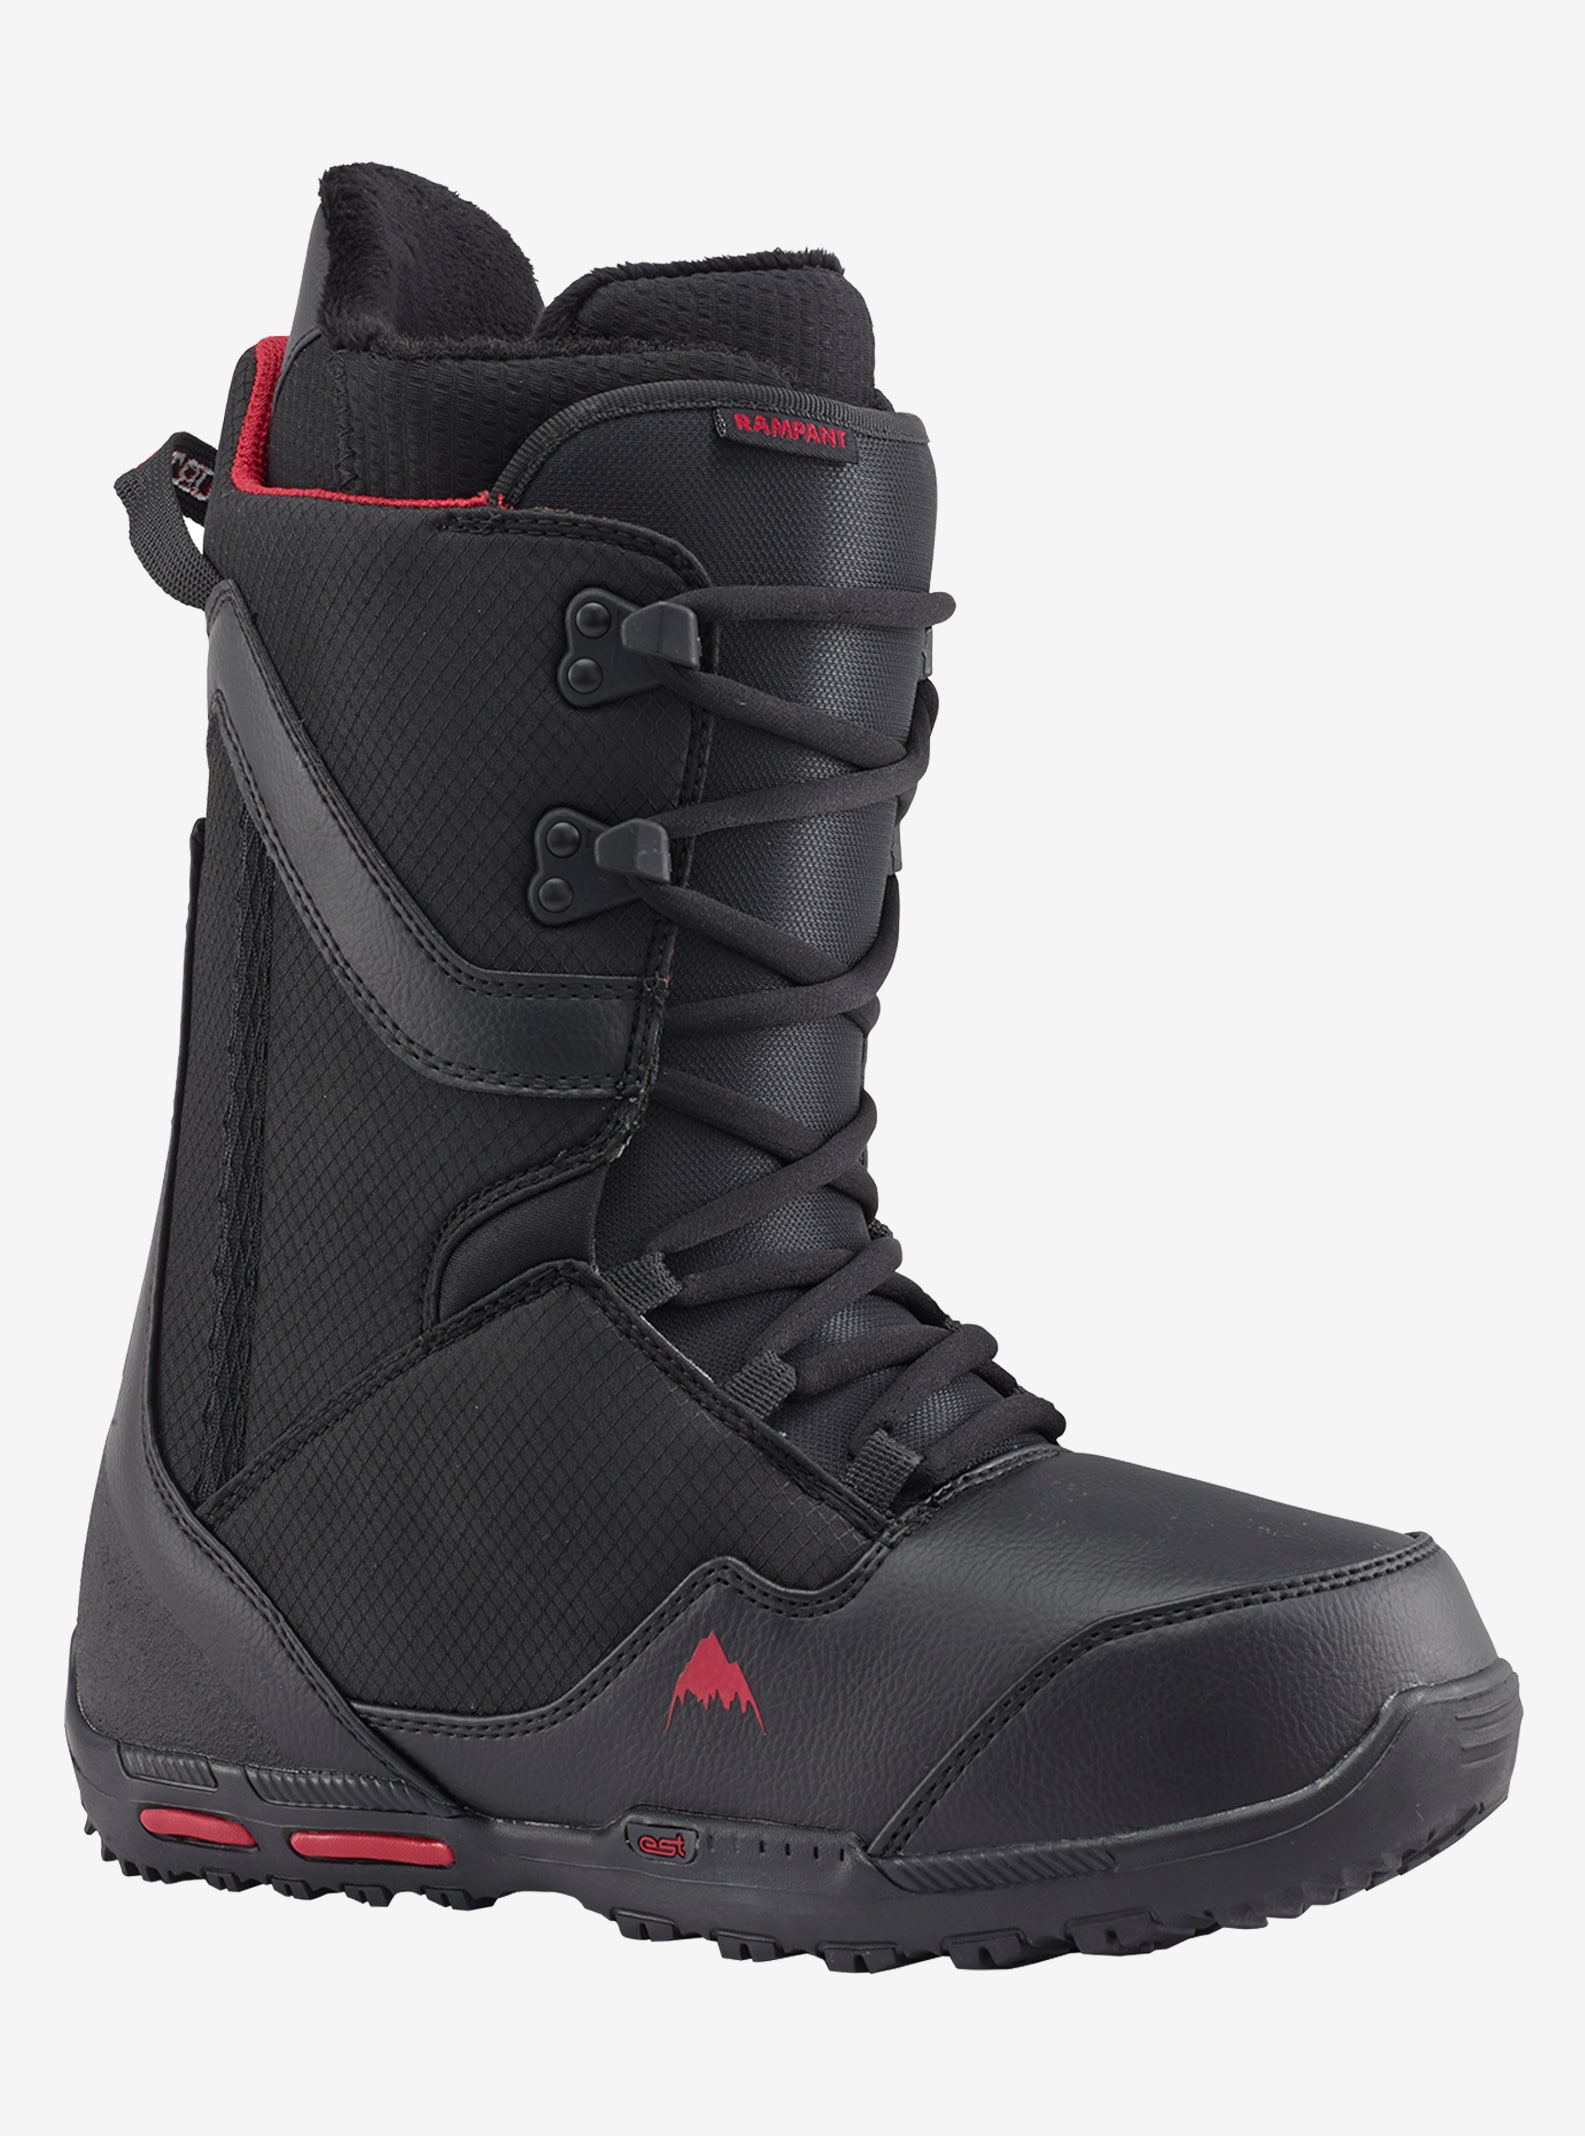 Men's Burton Rampant Snowboard Boot shown in Black / Red